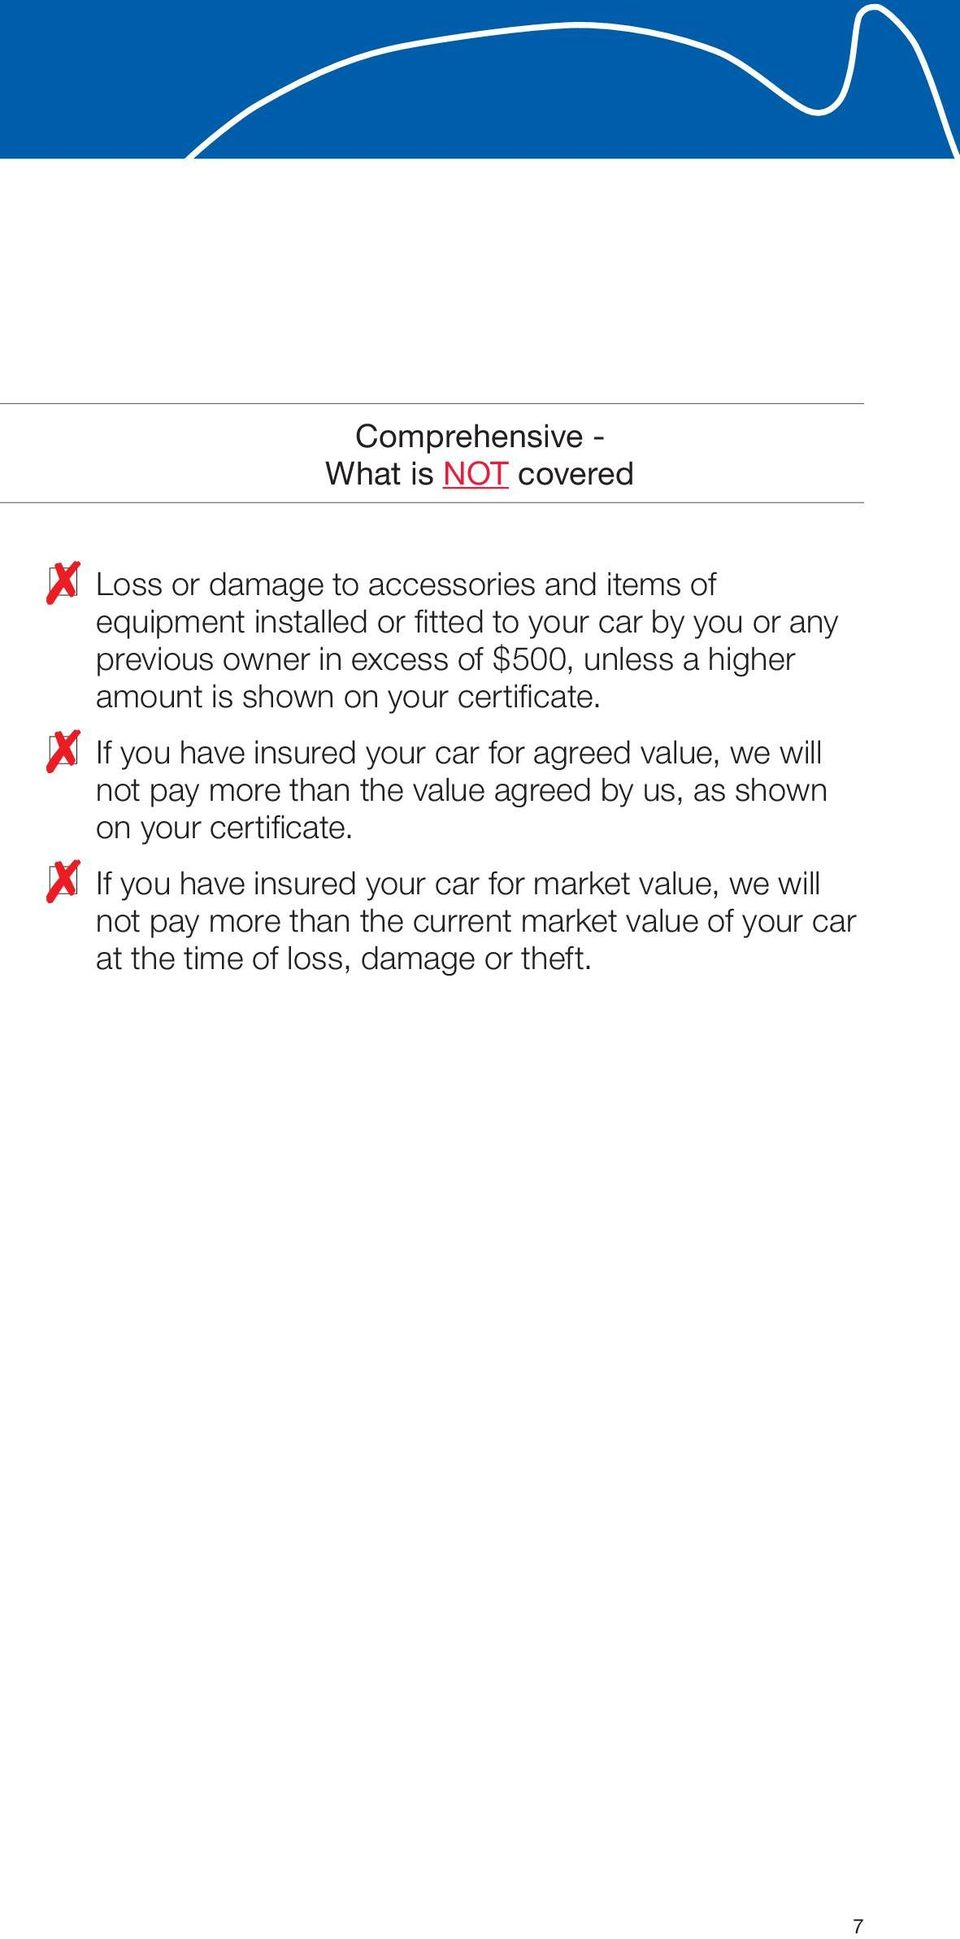 If you have insured your car for agreed value, we will not pay more than the value agreed by us, as shown on your